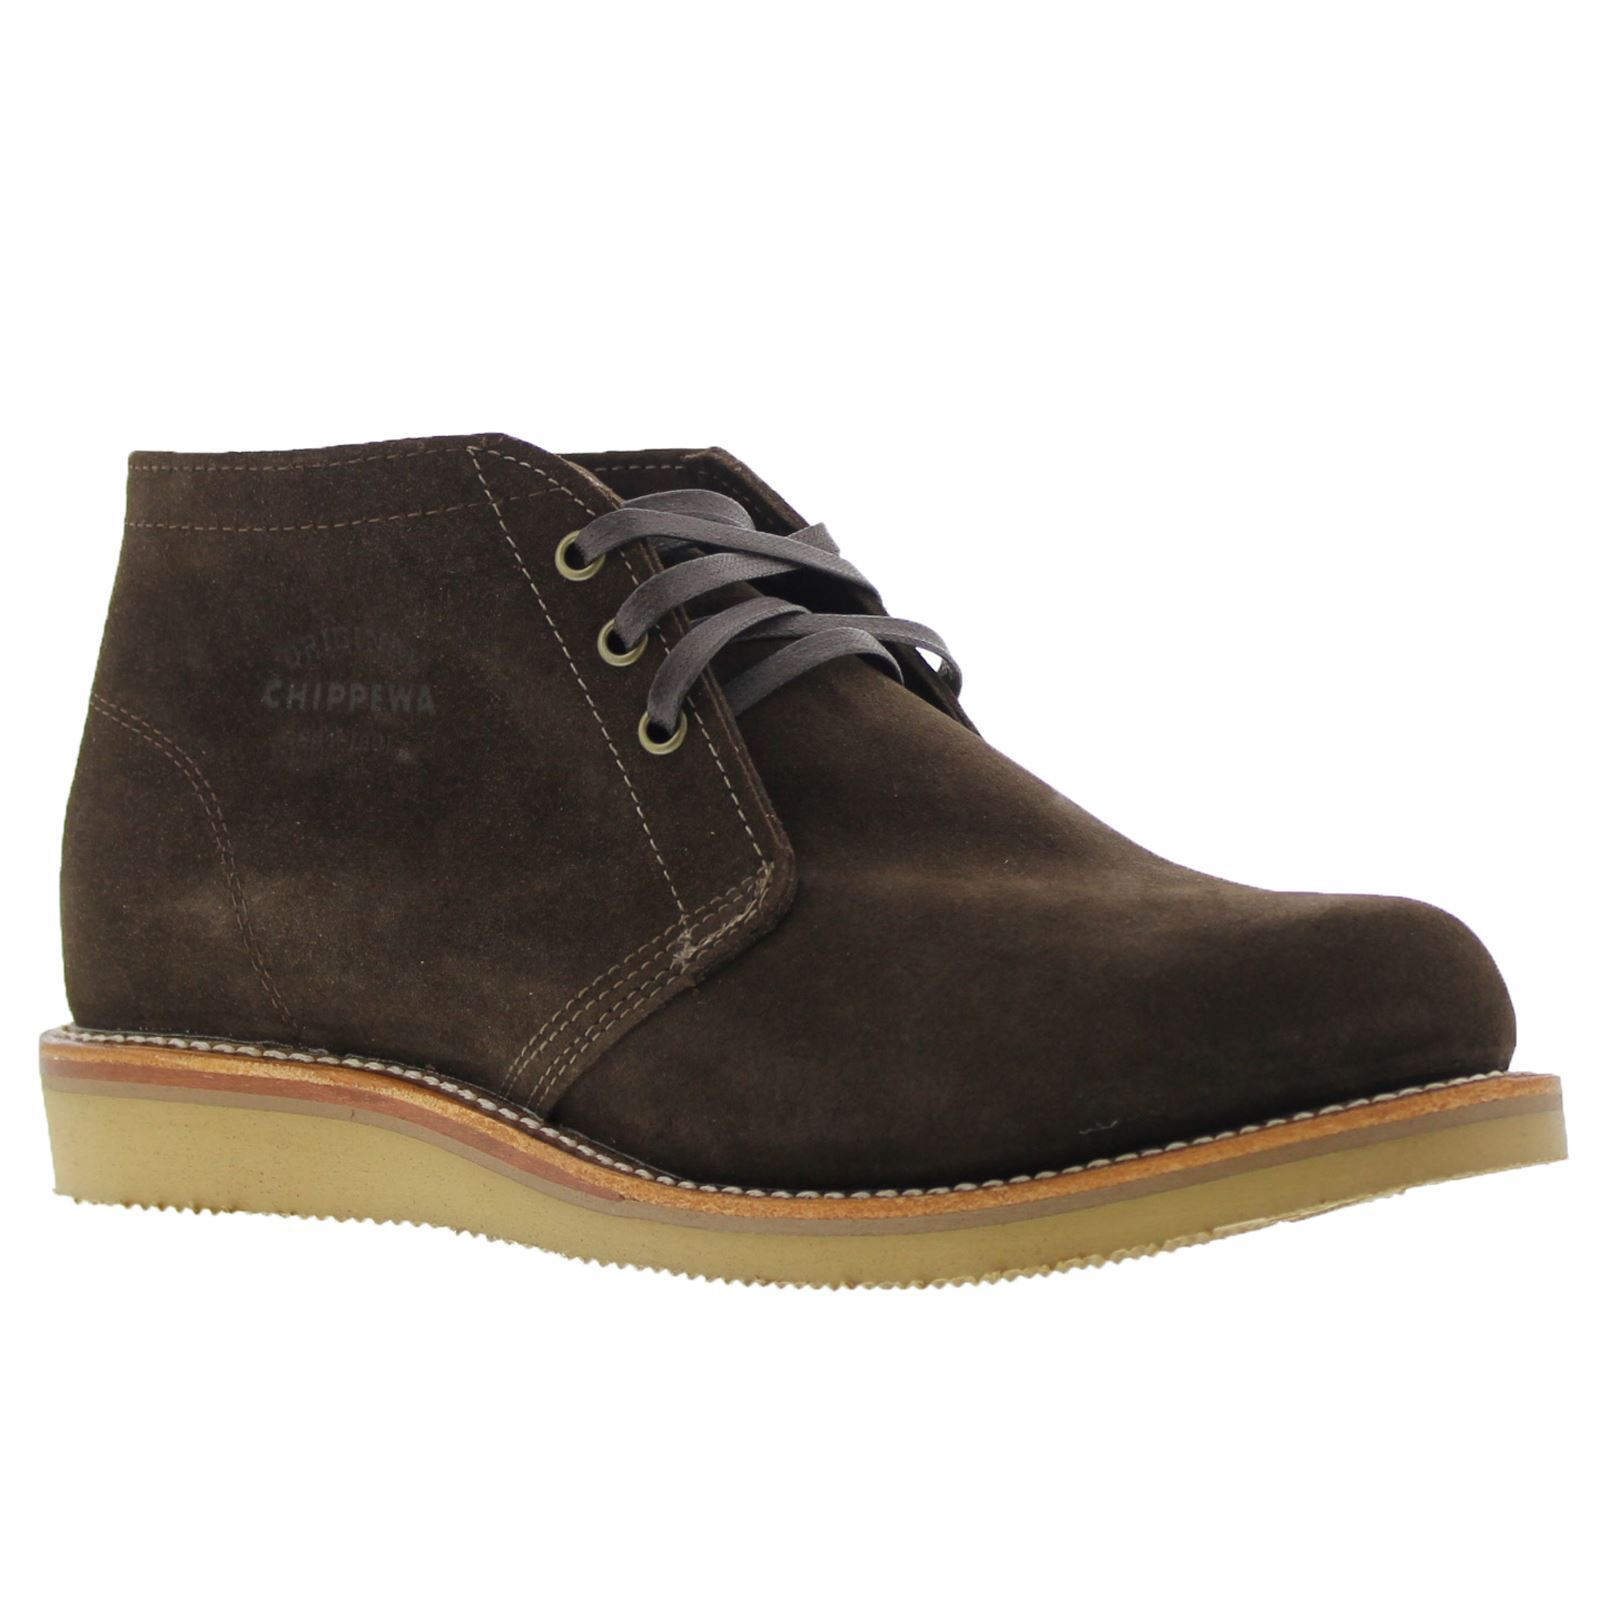 Chippewa 1901G05 Chocolate Mens Suede Leather Ankleboots